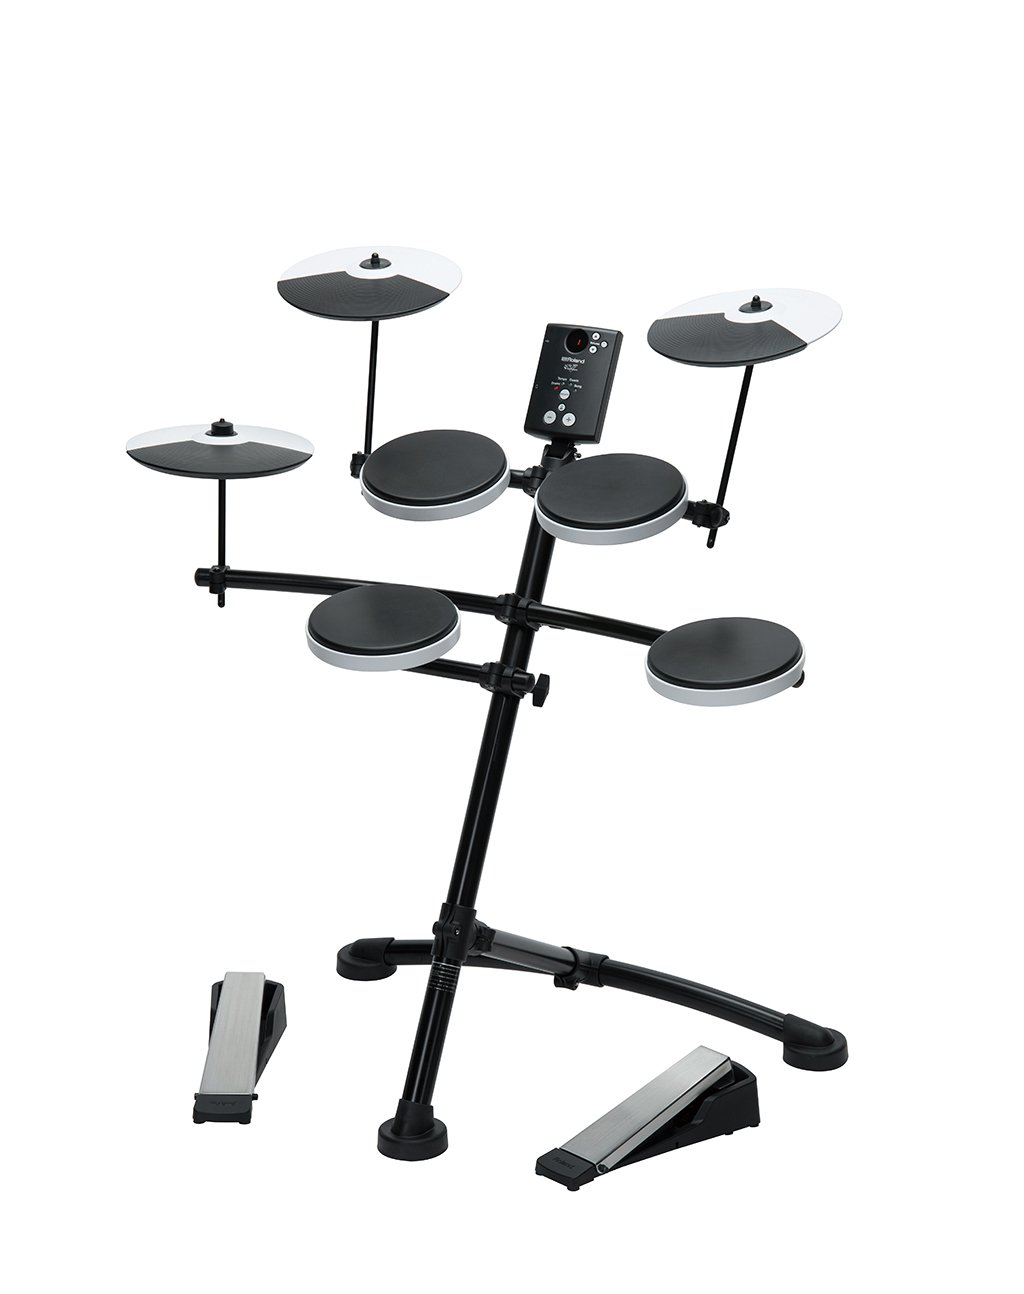 Roland td 1k v drums electronic drum kit amazon musical roland td 1k v drums electronic drum kit amazon musical instruments solutioingenieria Images